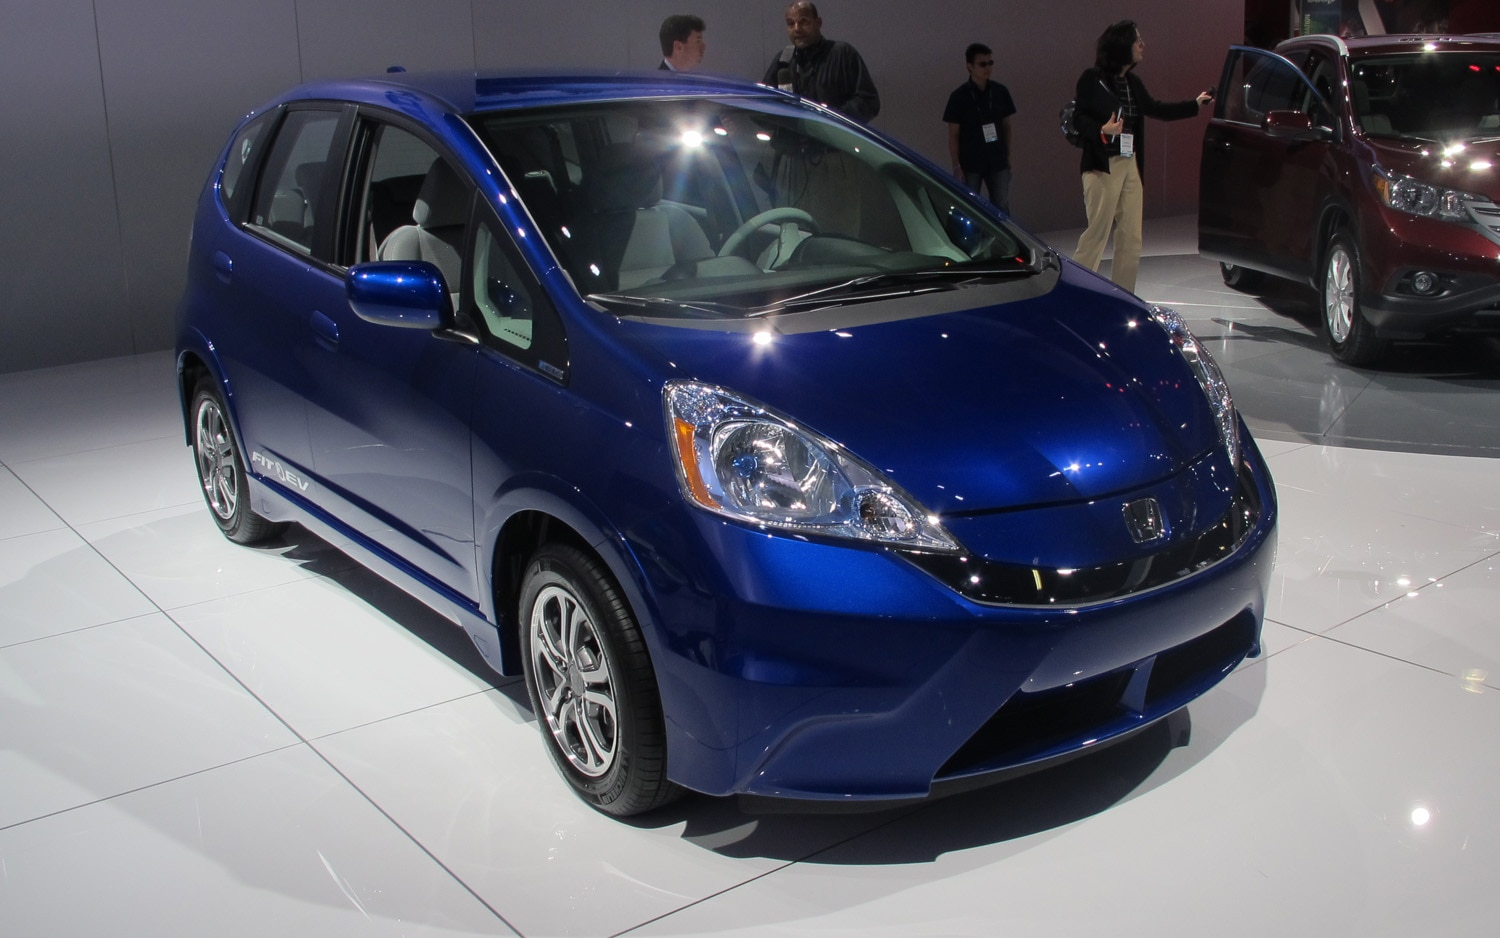 Honda honda fit ev range : Los Angeles 2011: Honda Electrifies The 2013 Fit EV